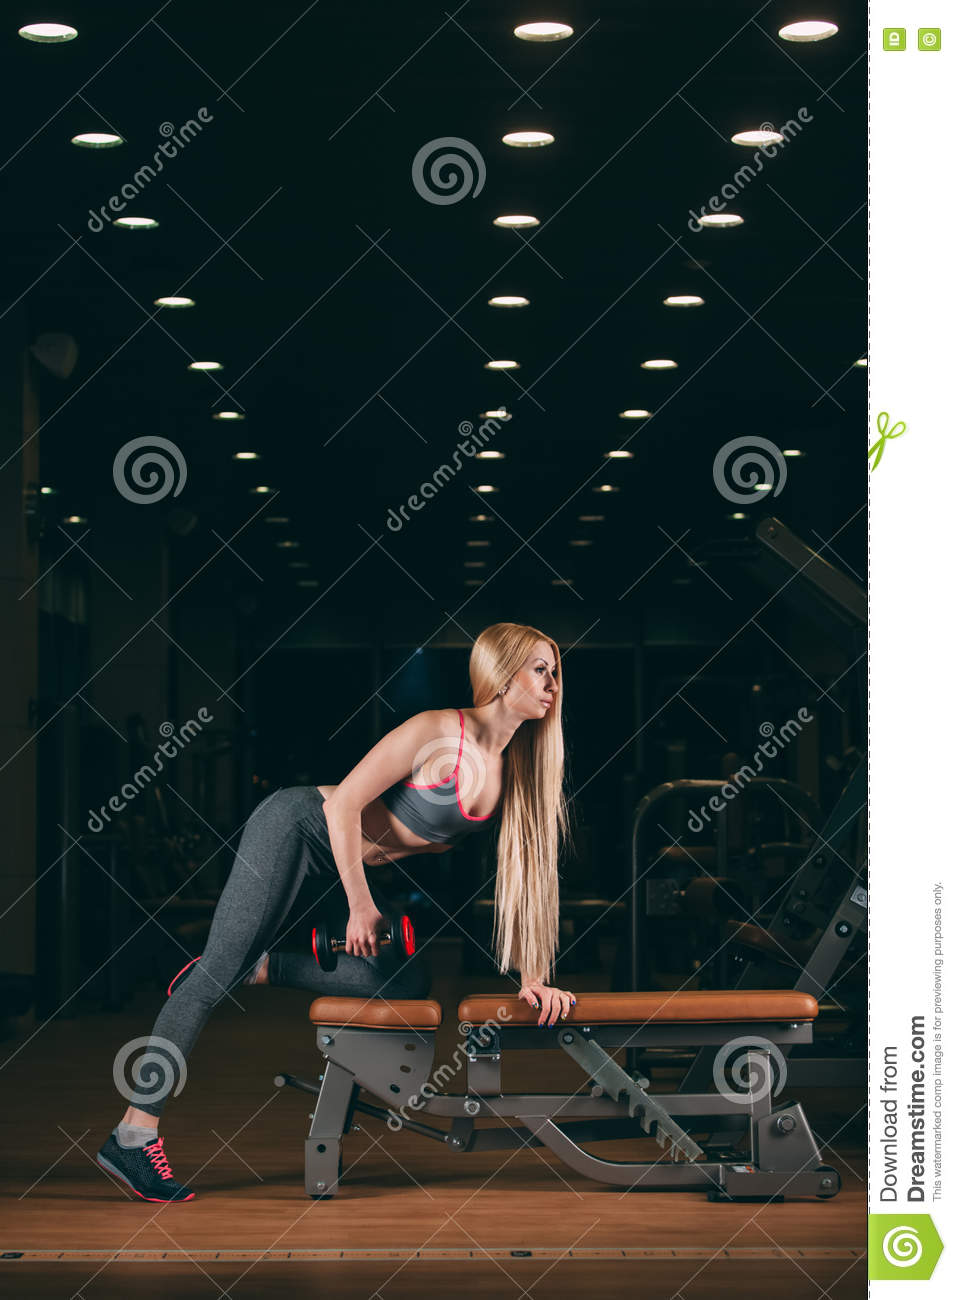 Brutal athletic woman pumping up muscles with dumbbells in gym